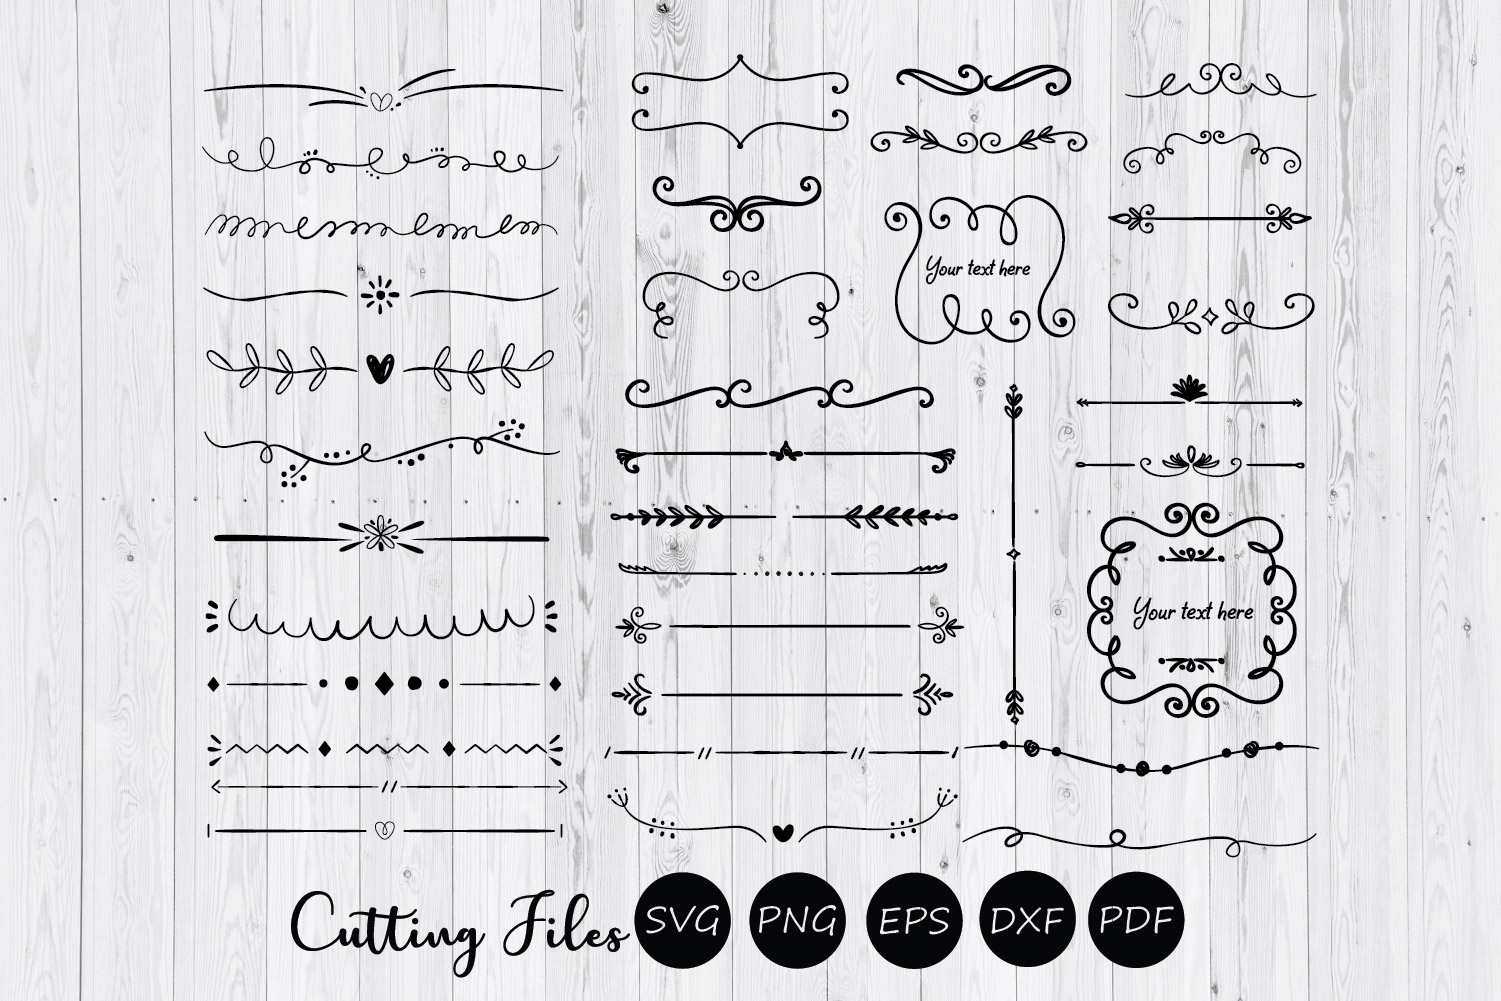 36 Hand drawn floral ornaments and text dividers example image 1